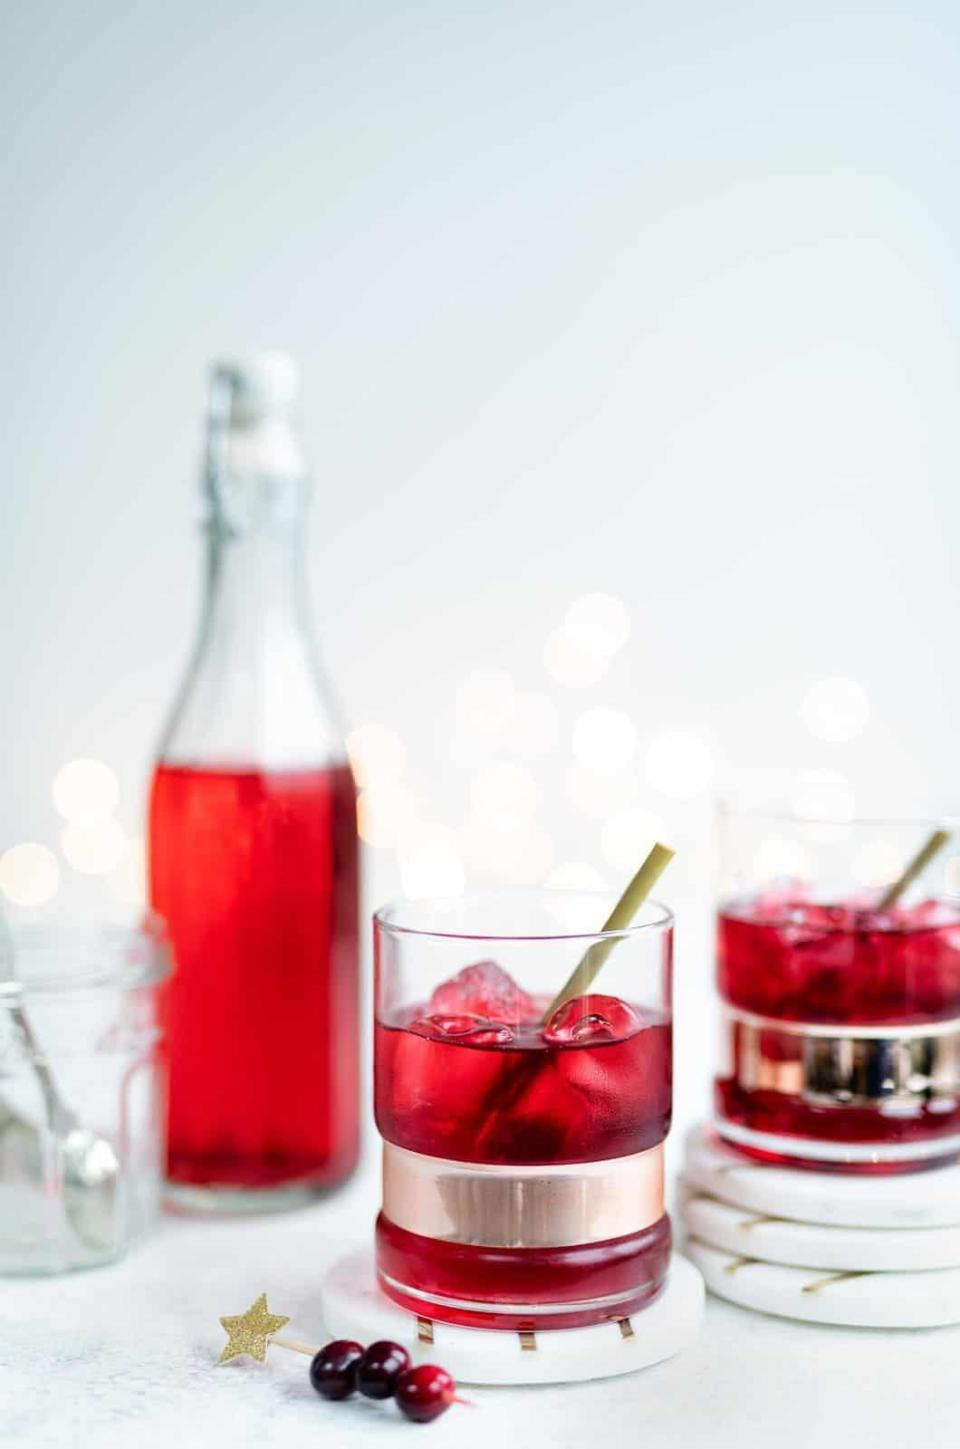 """<p>Far in distance but close in heart, Utah residents are craving the classic Cape Cod cocktail. Mix together muddled cranberries, simple syrup, and vodka, and sip on the cranberry drink of your dreams.</p> <p><strong>Get the recipe</strong>: <a href=""""https://www.popsugar.com/buy?url=https%3A%2F%2Fwww.supergoldenbakes.com%2Fcape-cod-drink%2F&p_name=Cape%20Cod&retailer=supergoldenbakes.com&evar1=yum%3Aus&evar9=47471653&evar98=https%3A%2F%2Fwww.popsugar.com%2Ffood%2Fphoto-gallery%2F47471653%2Fimage%2F47475202%2FUtah-Cape-Cod&list1=cocktails%2Cdrinks%2Calcohol%2Crecipes&prop13=api&pdata=1"""" class=""""link rapid-noclick-resp"""" rel=""""nofollow noopener"""" target=""""_blank"""" data-ylk=""""slk:Cape Cod"""">Cape Cod</a></p>"""